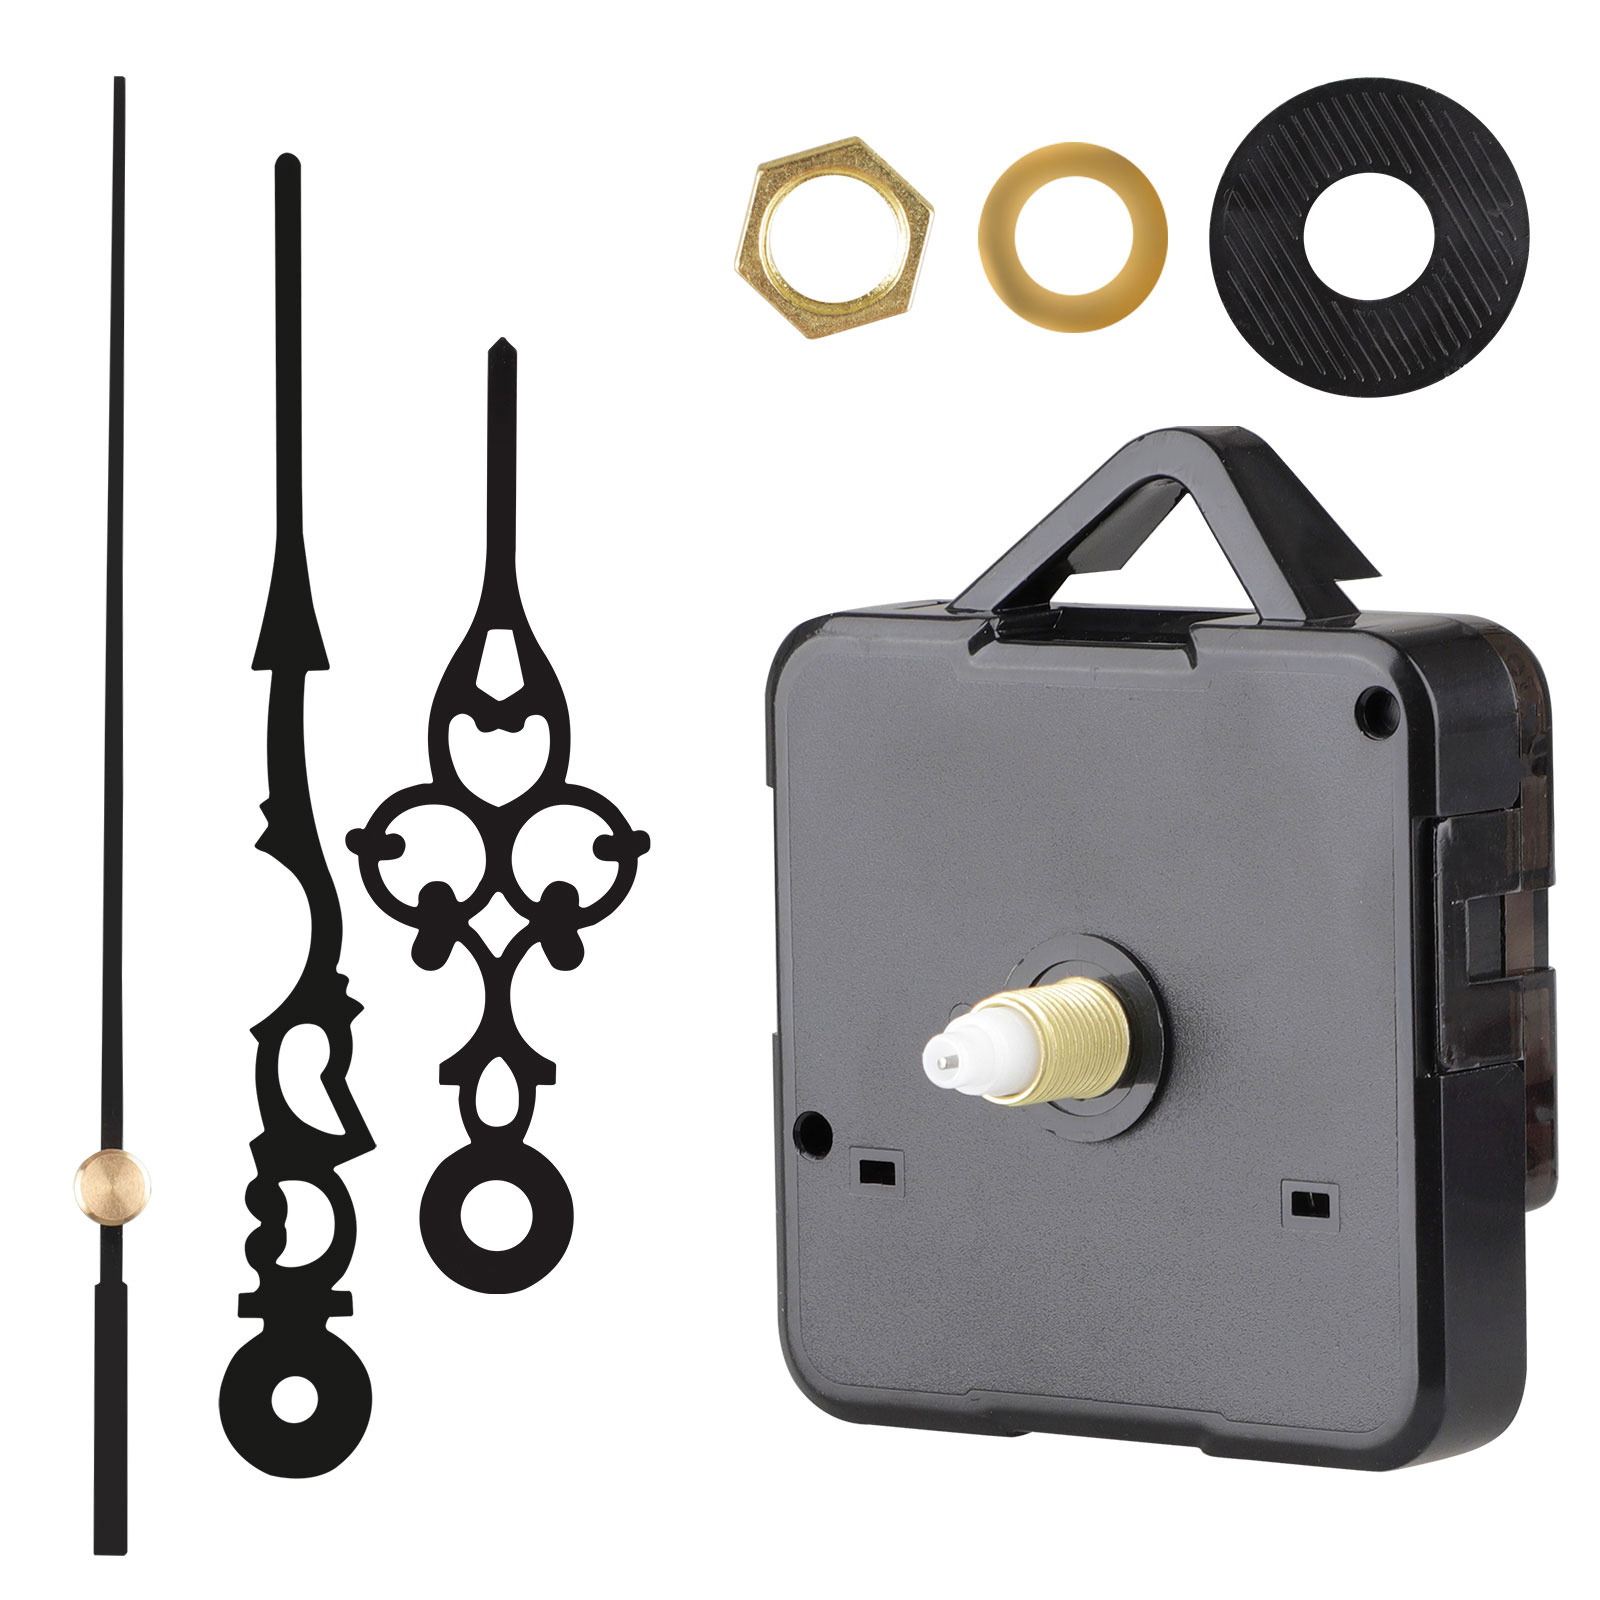 4 Pieces Long Shaft Clock Movements Clock Hands Mechanism High Torque Mechanism with 5 Different Pairs of DIY Clock Repair Parts Replacement for Clock Repair Replacement